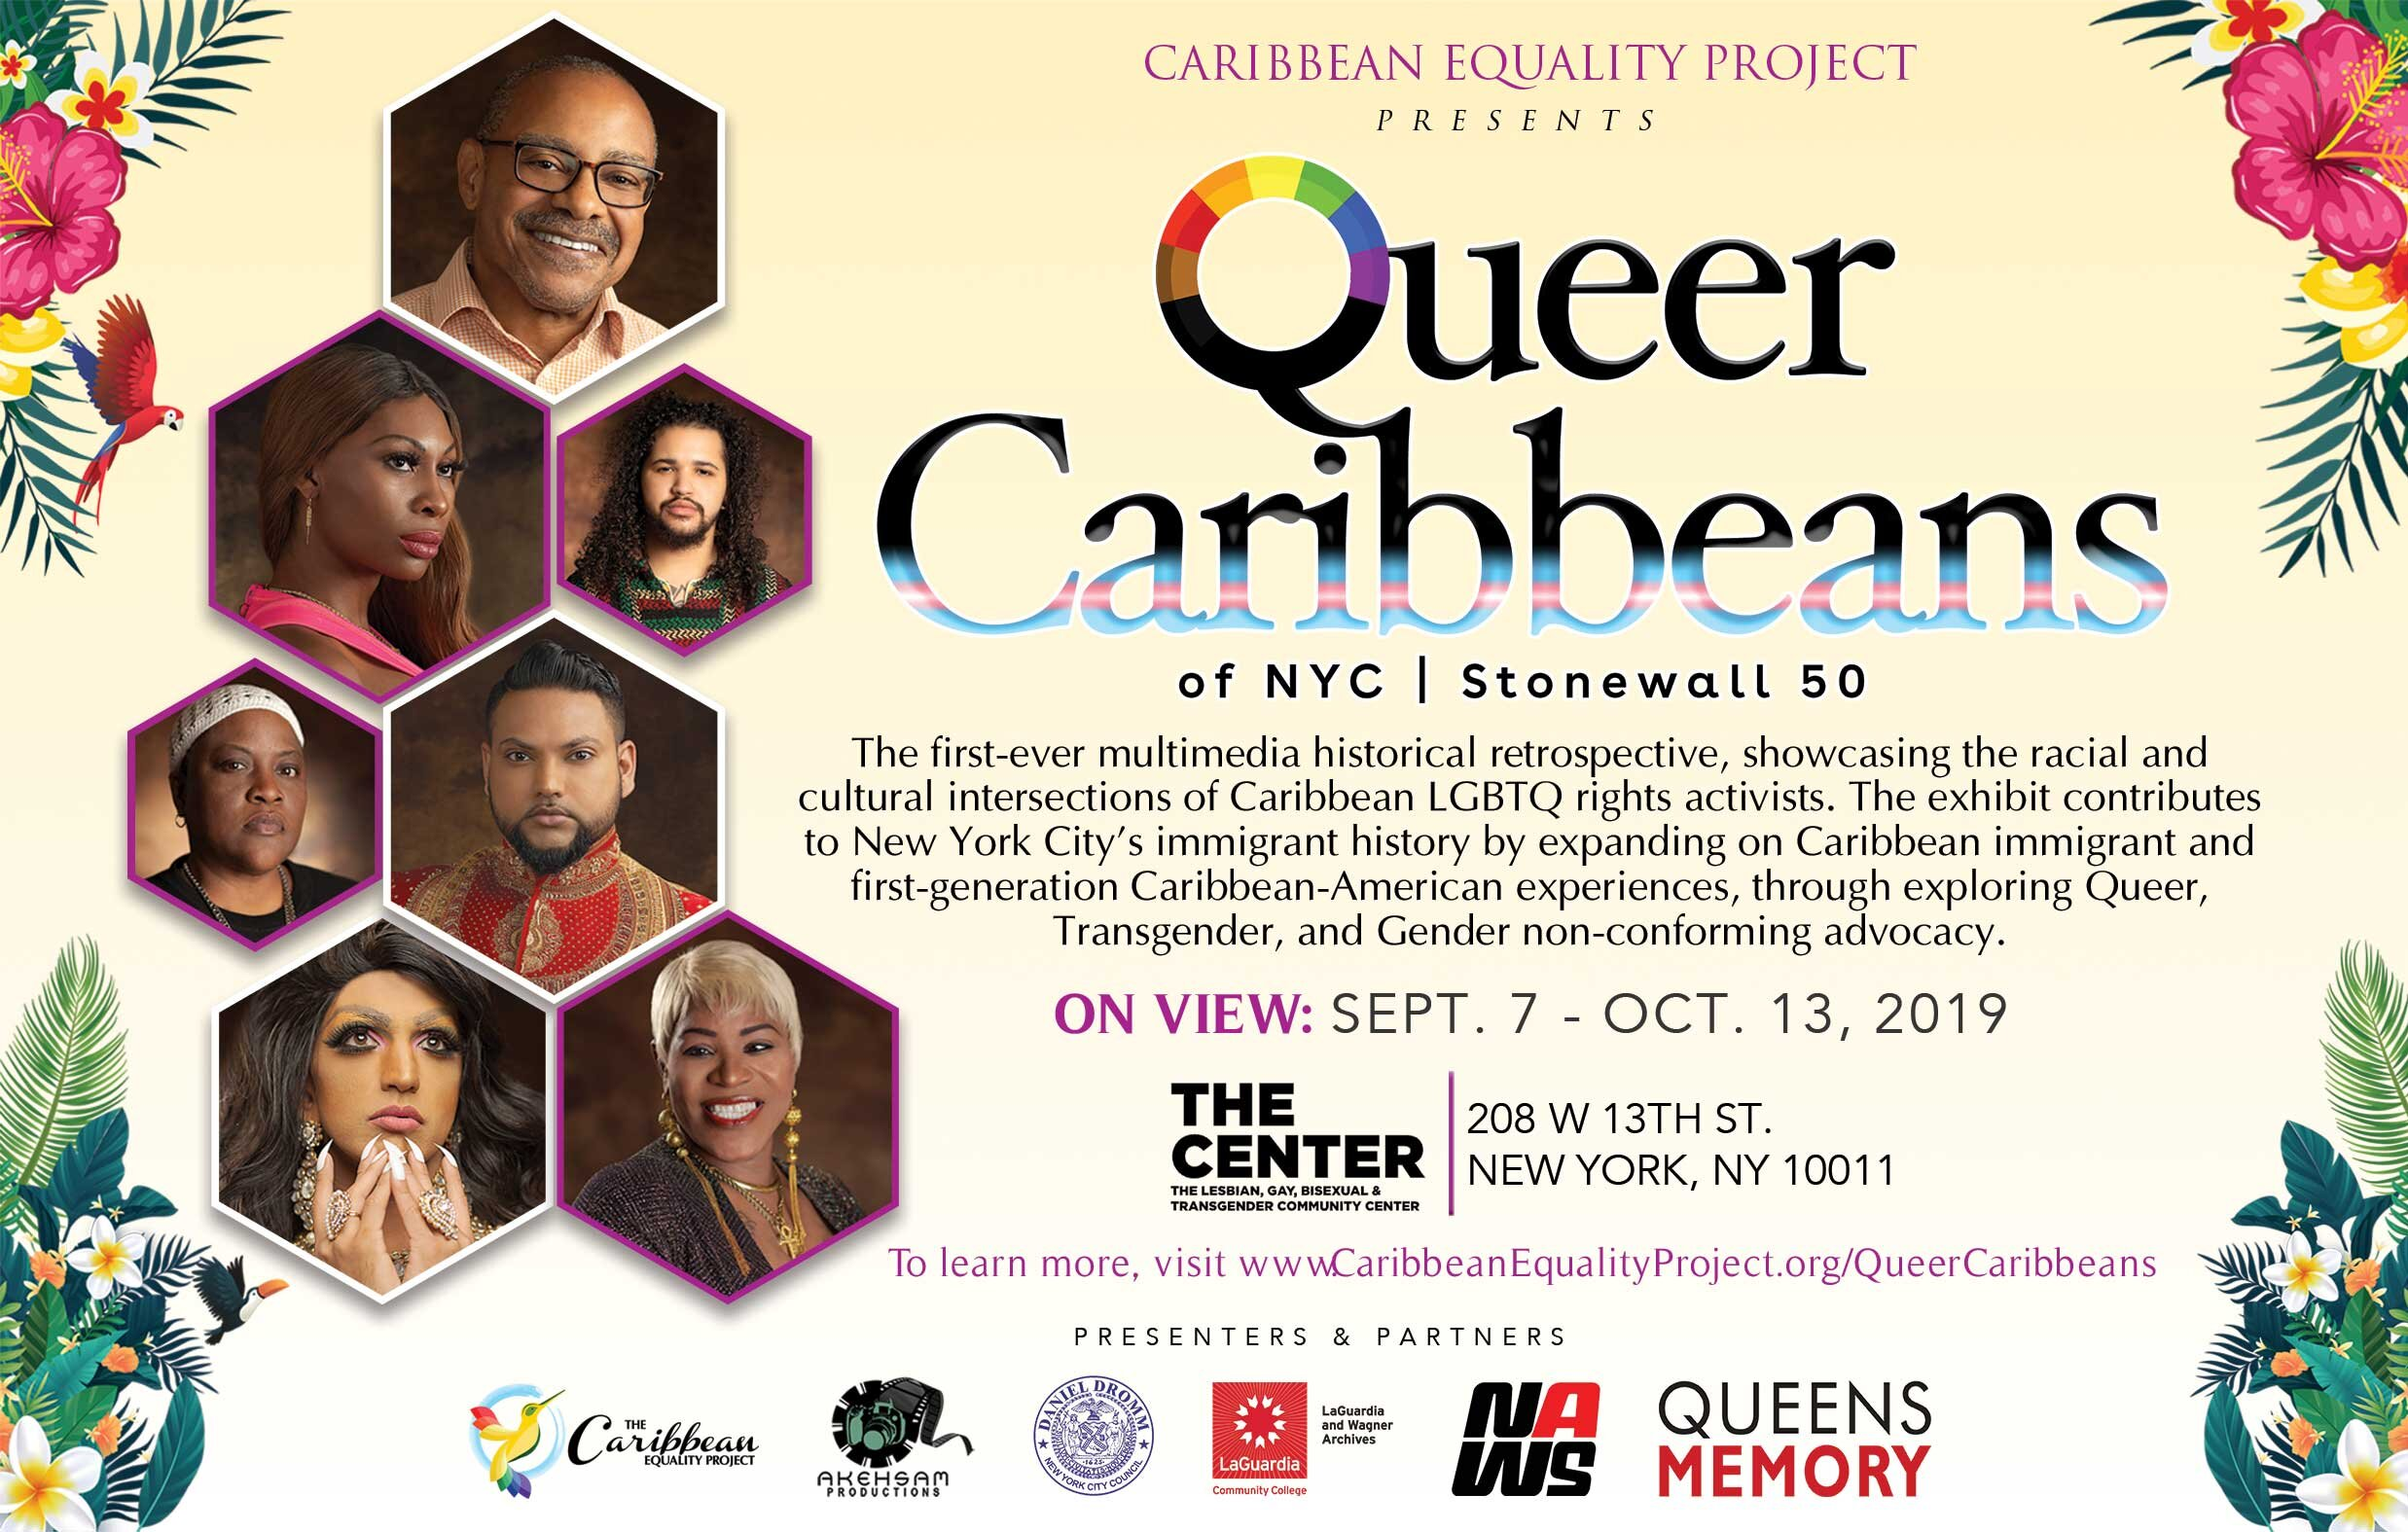 Queer Caribbeans of NYC | Stonewall 50 Exhibition